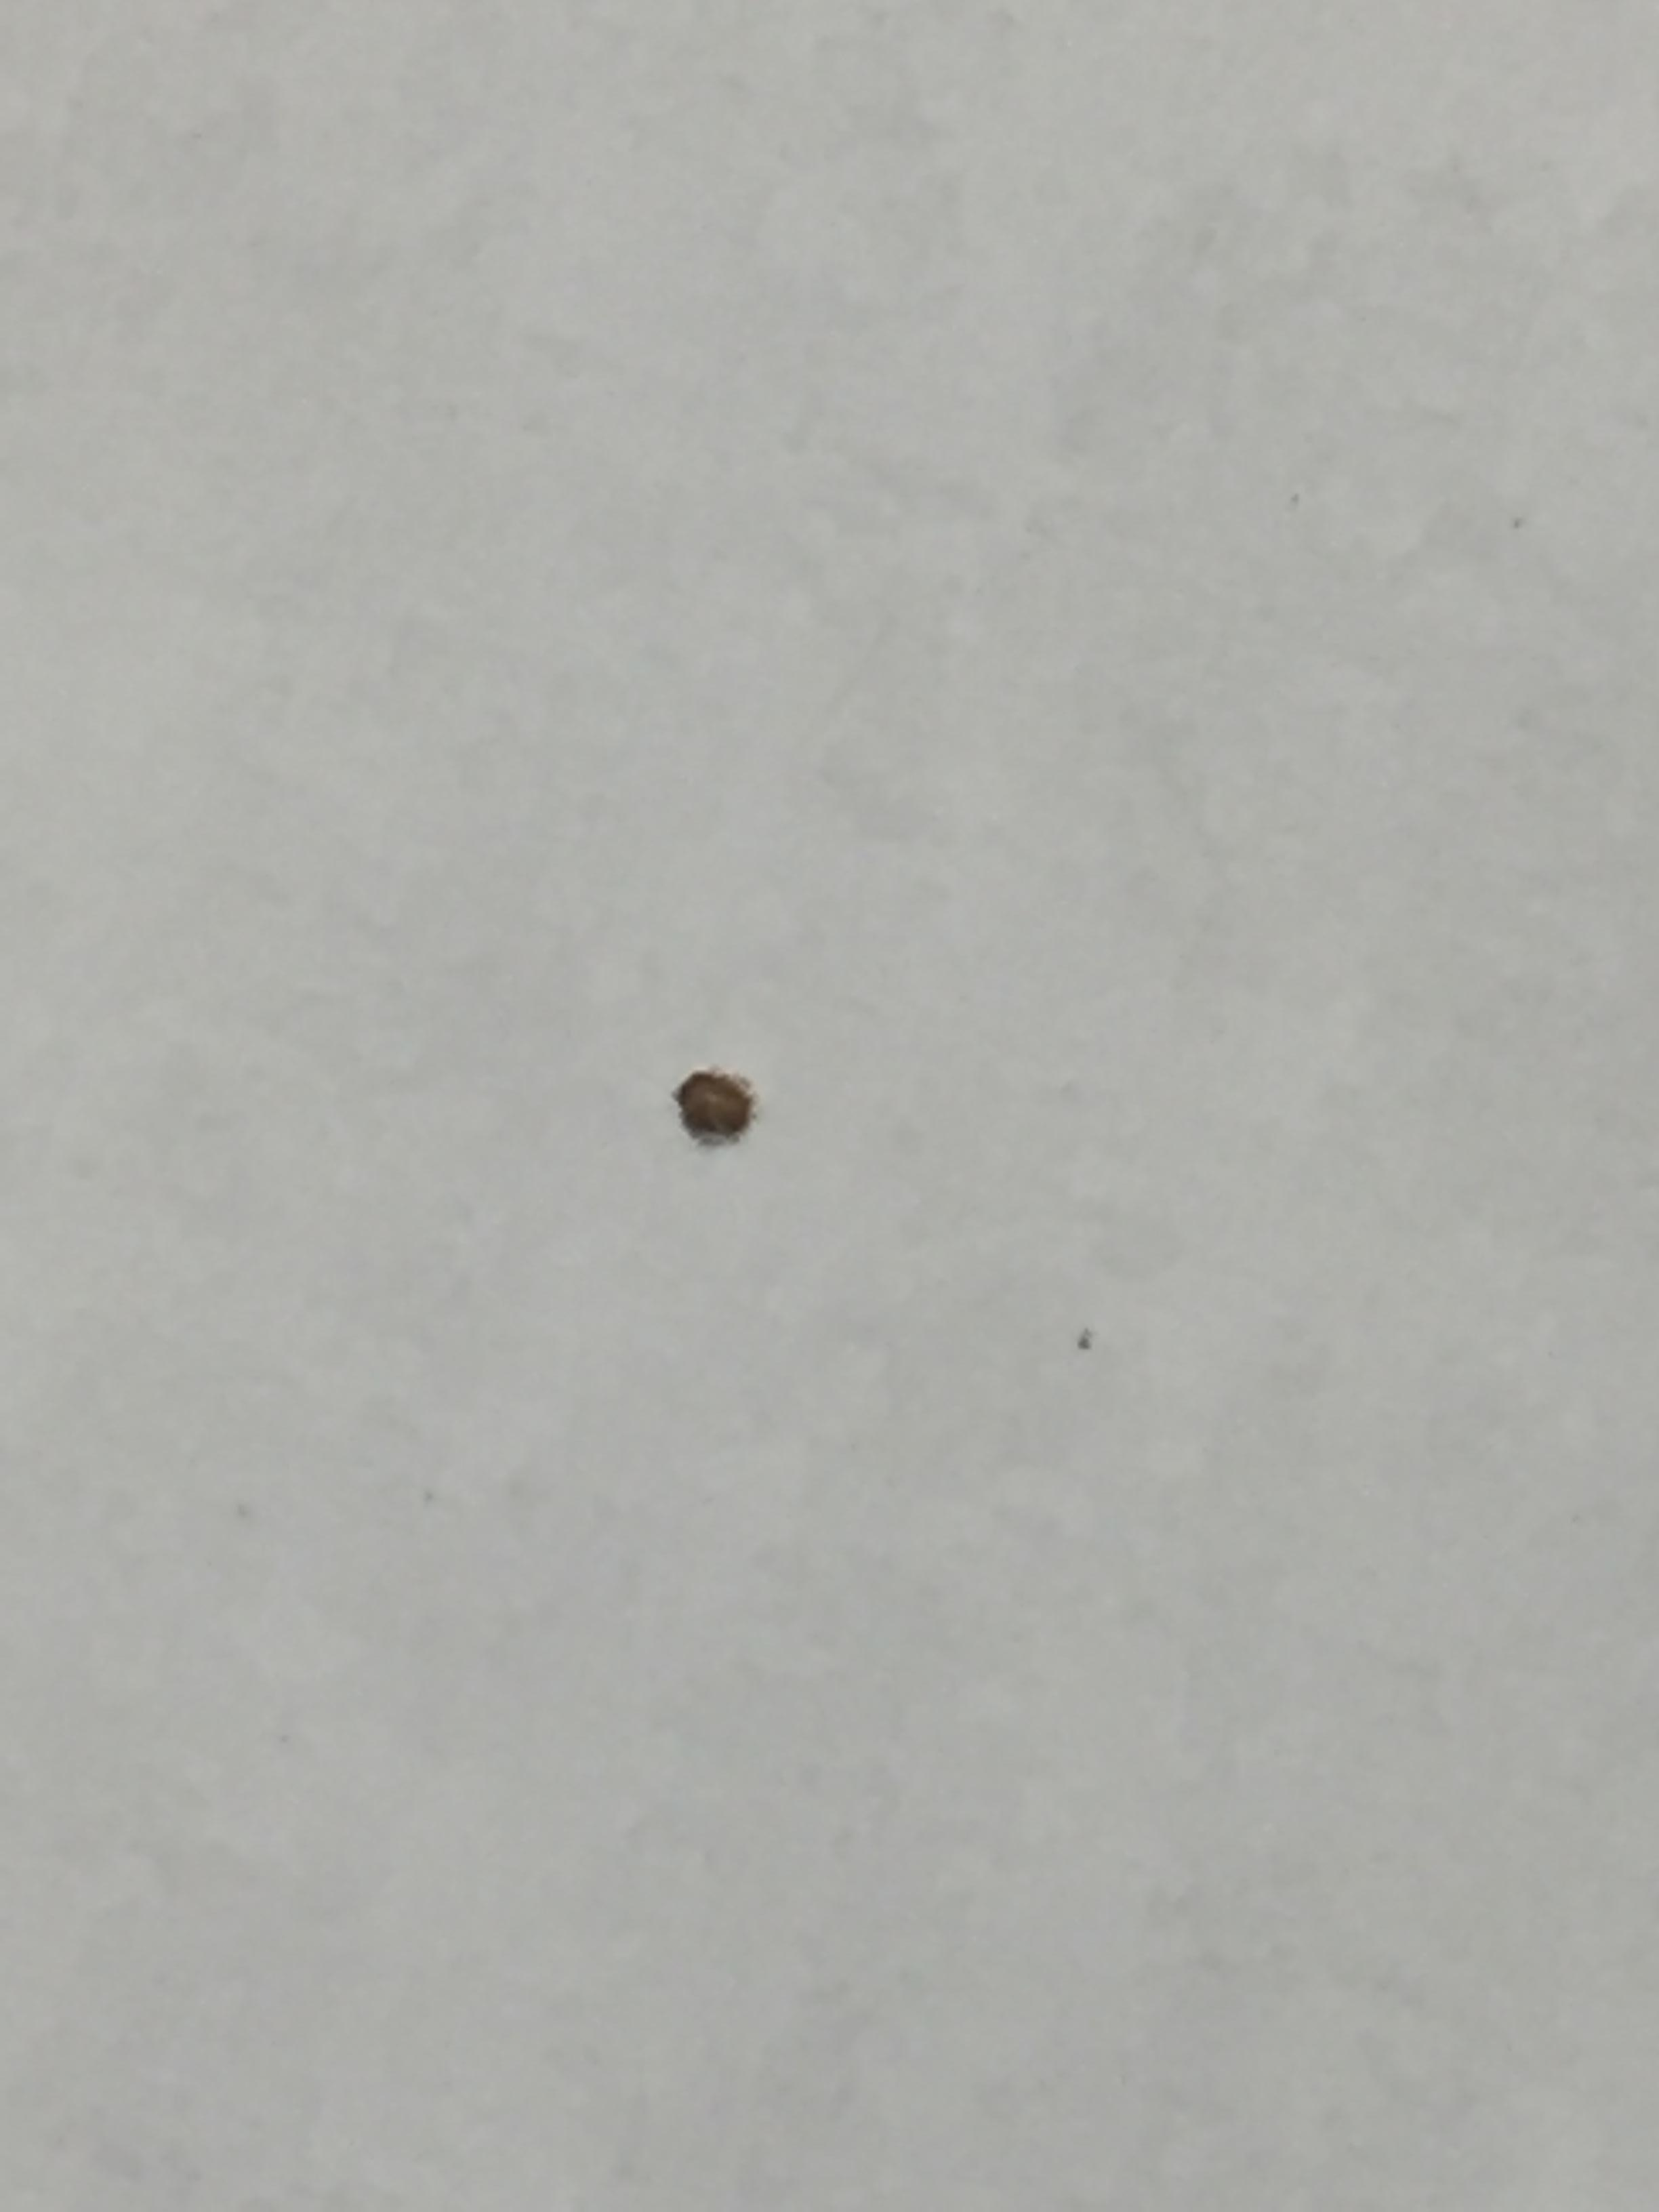 Found in bed. Not sure what it was